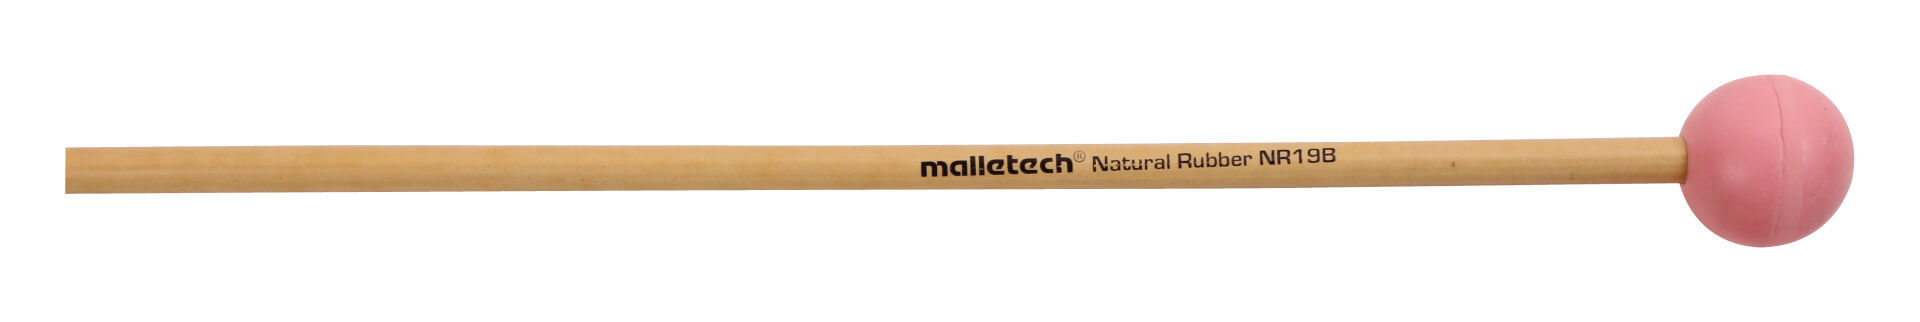 Malletech NR19B Natural Rubber Series